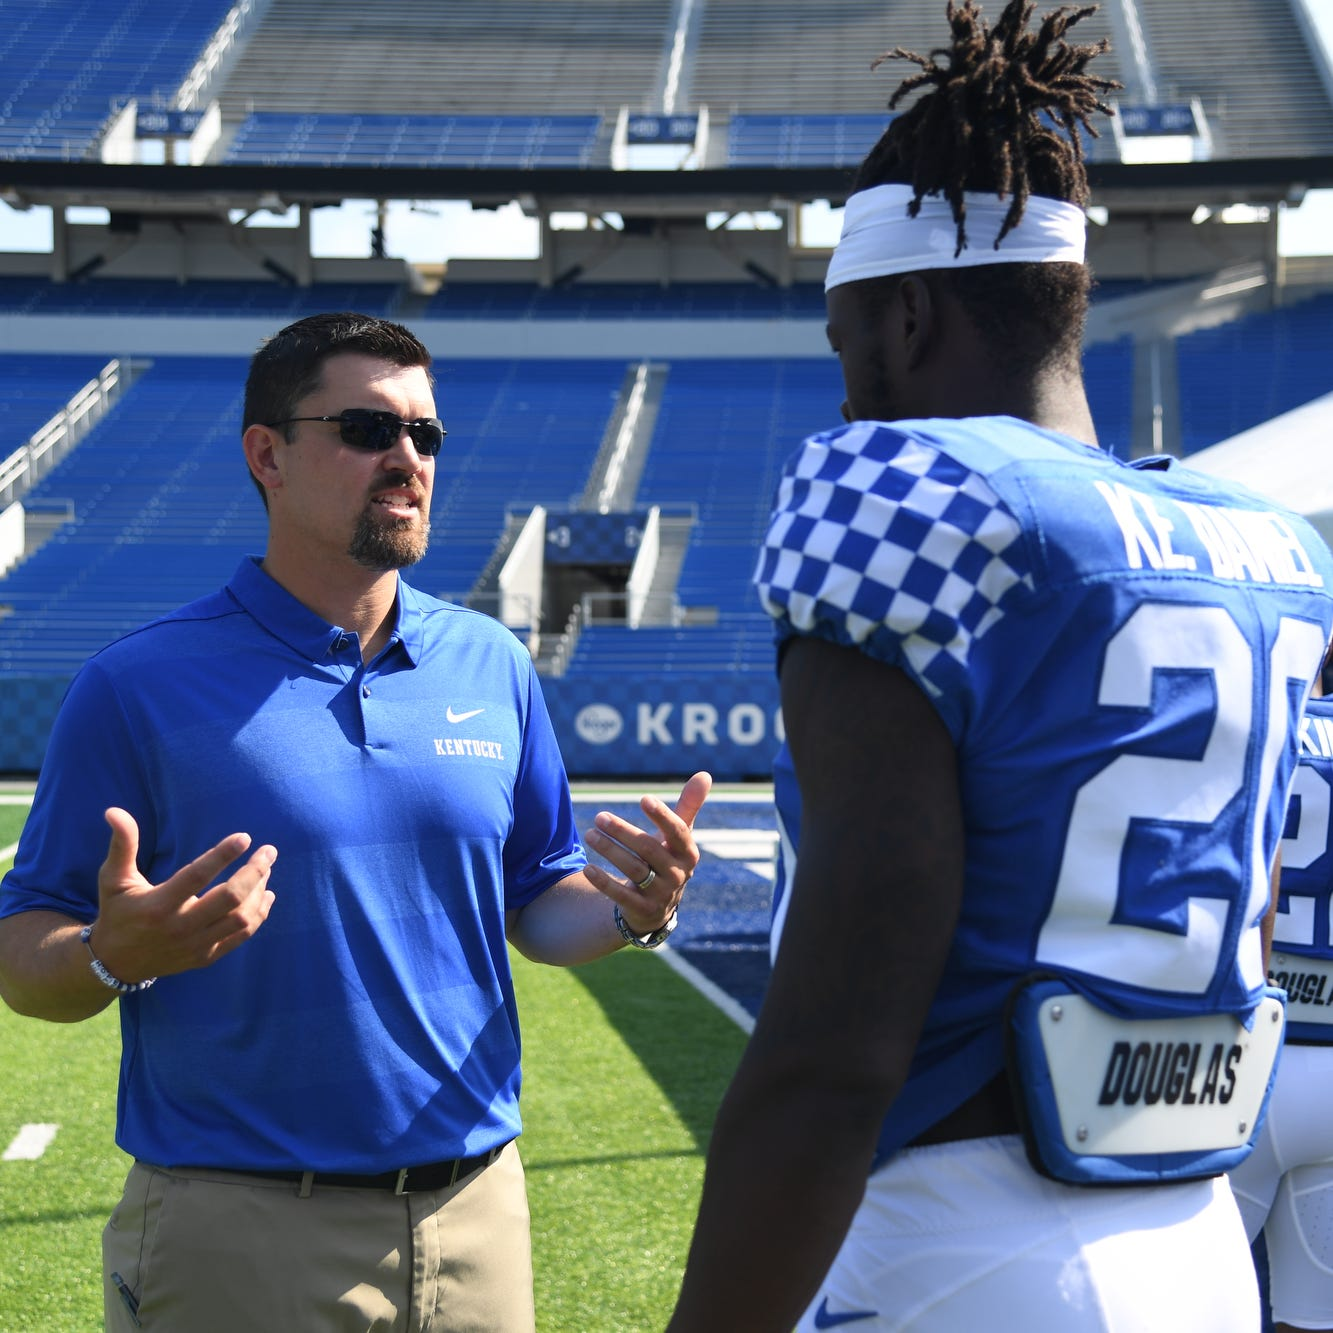 Kentucky lands commitment from Lamar Goods, 4-star Canadian with All-SEC potential